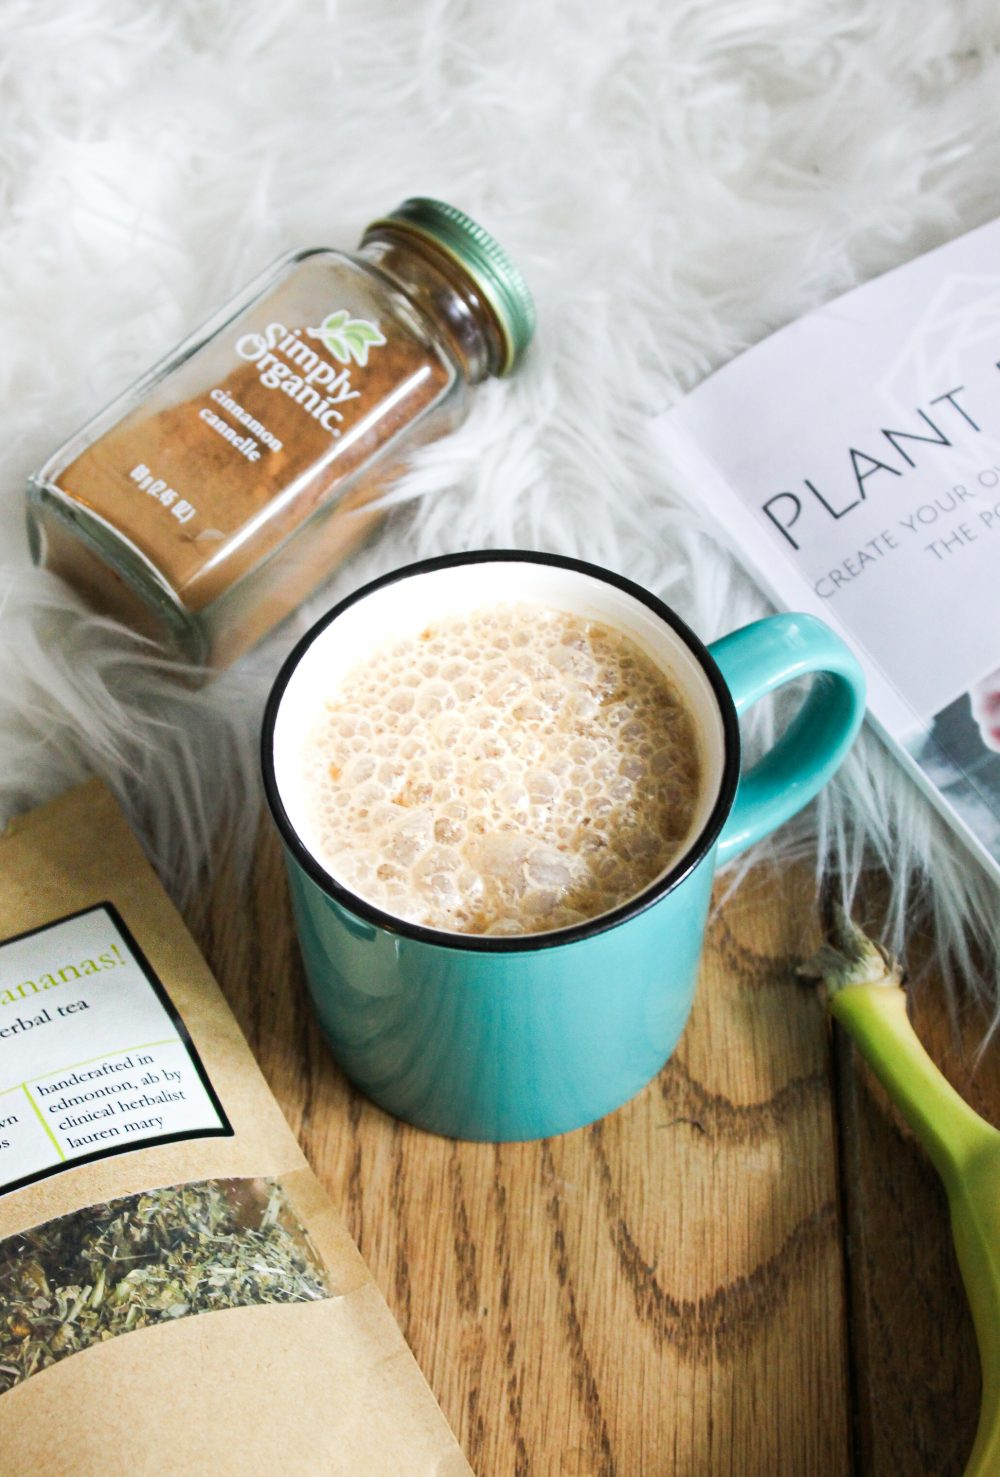 banana coconut dairy free latte in a teal mug with wood flooring and white rug with local Elle Wellness tea